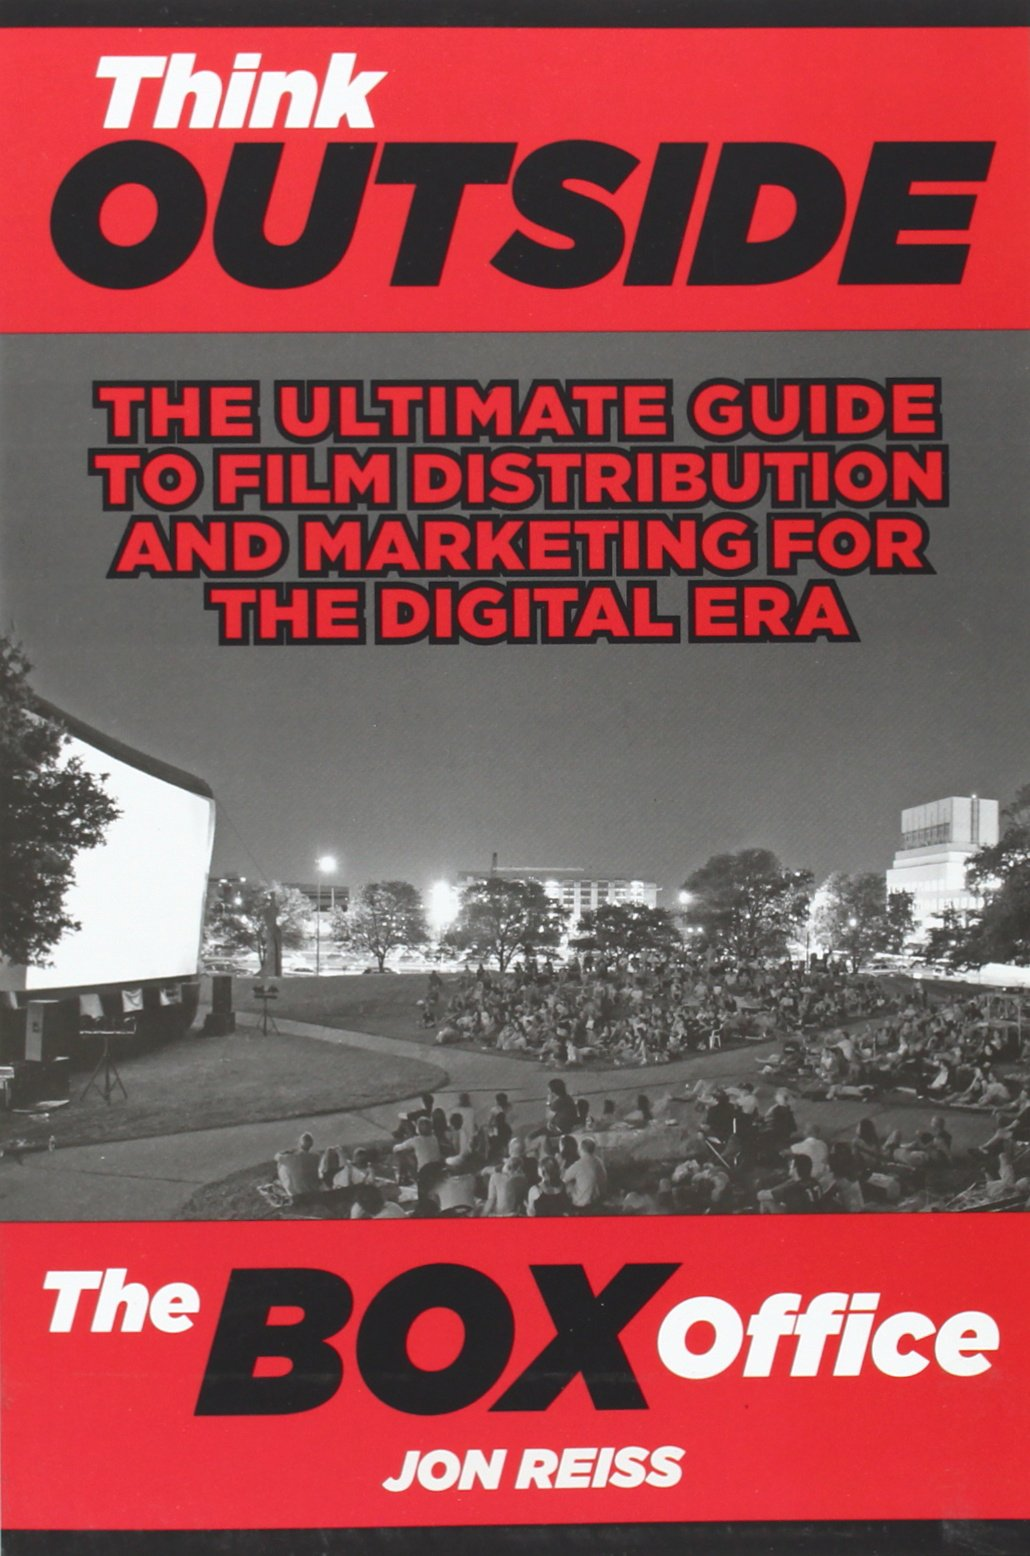 Download Think Outside the Box Office: The Ultimate Guide to Film Distribution and Marketing for the Digital Era PDF